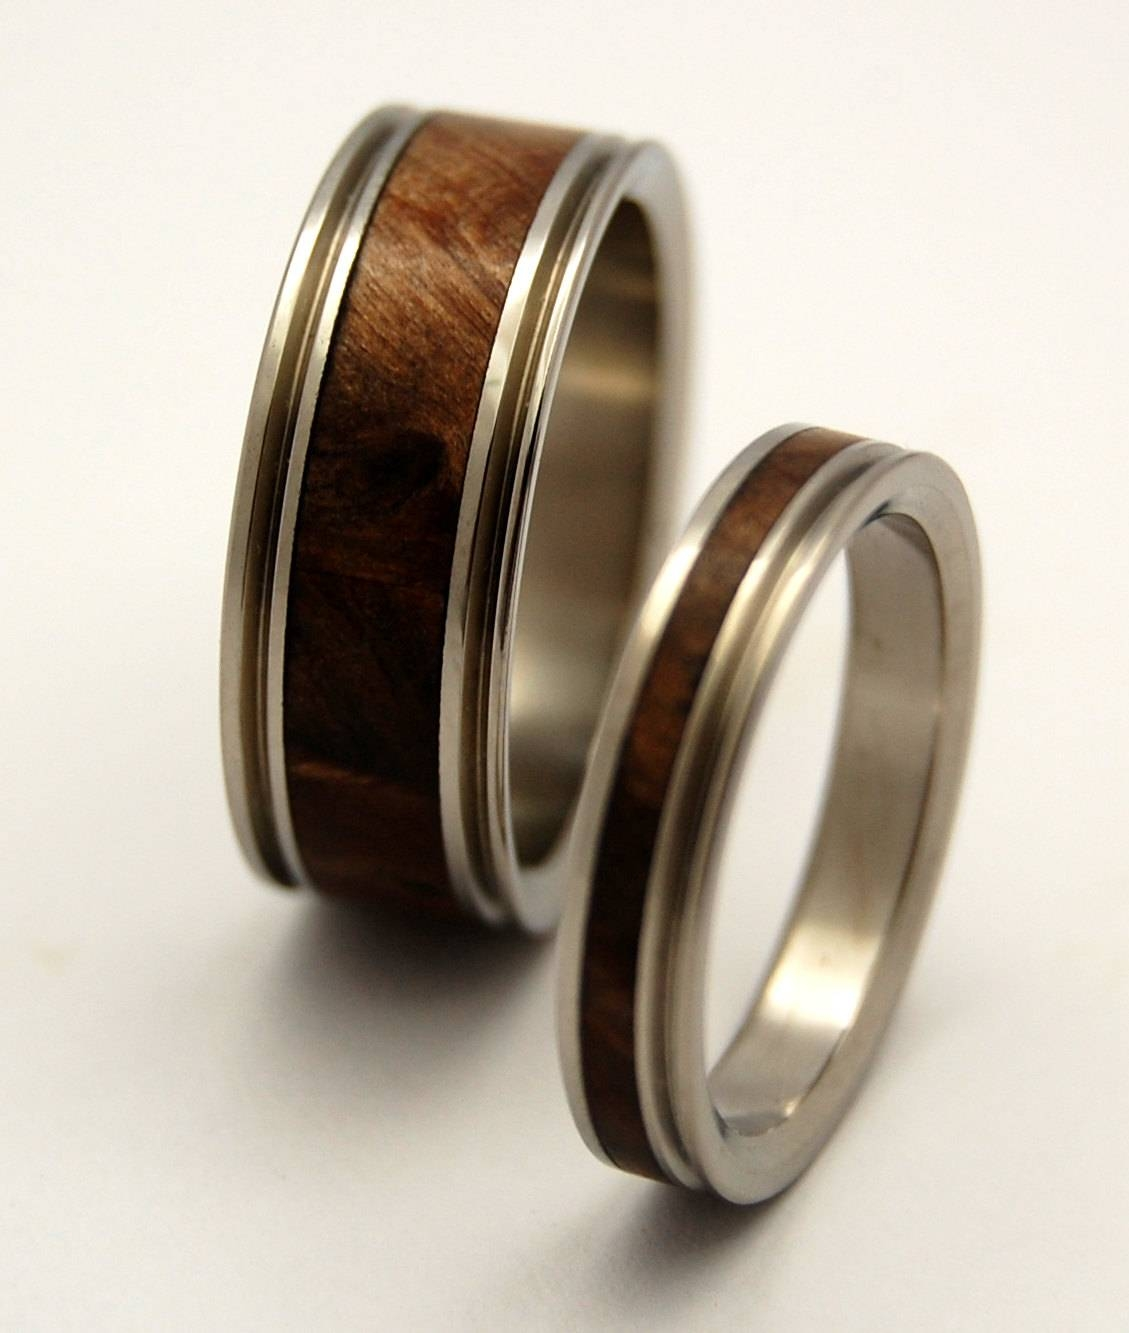 Wooden Wedding Rings Titanium Ring Titanium Wedding Rings In Mens Wooden Wedding Bands (View 13 of 15)